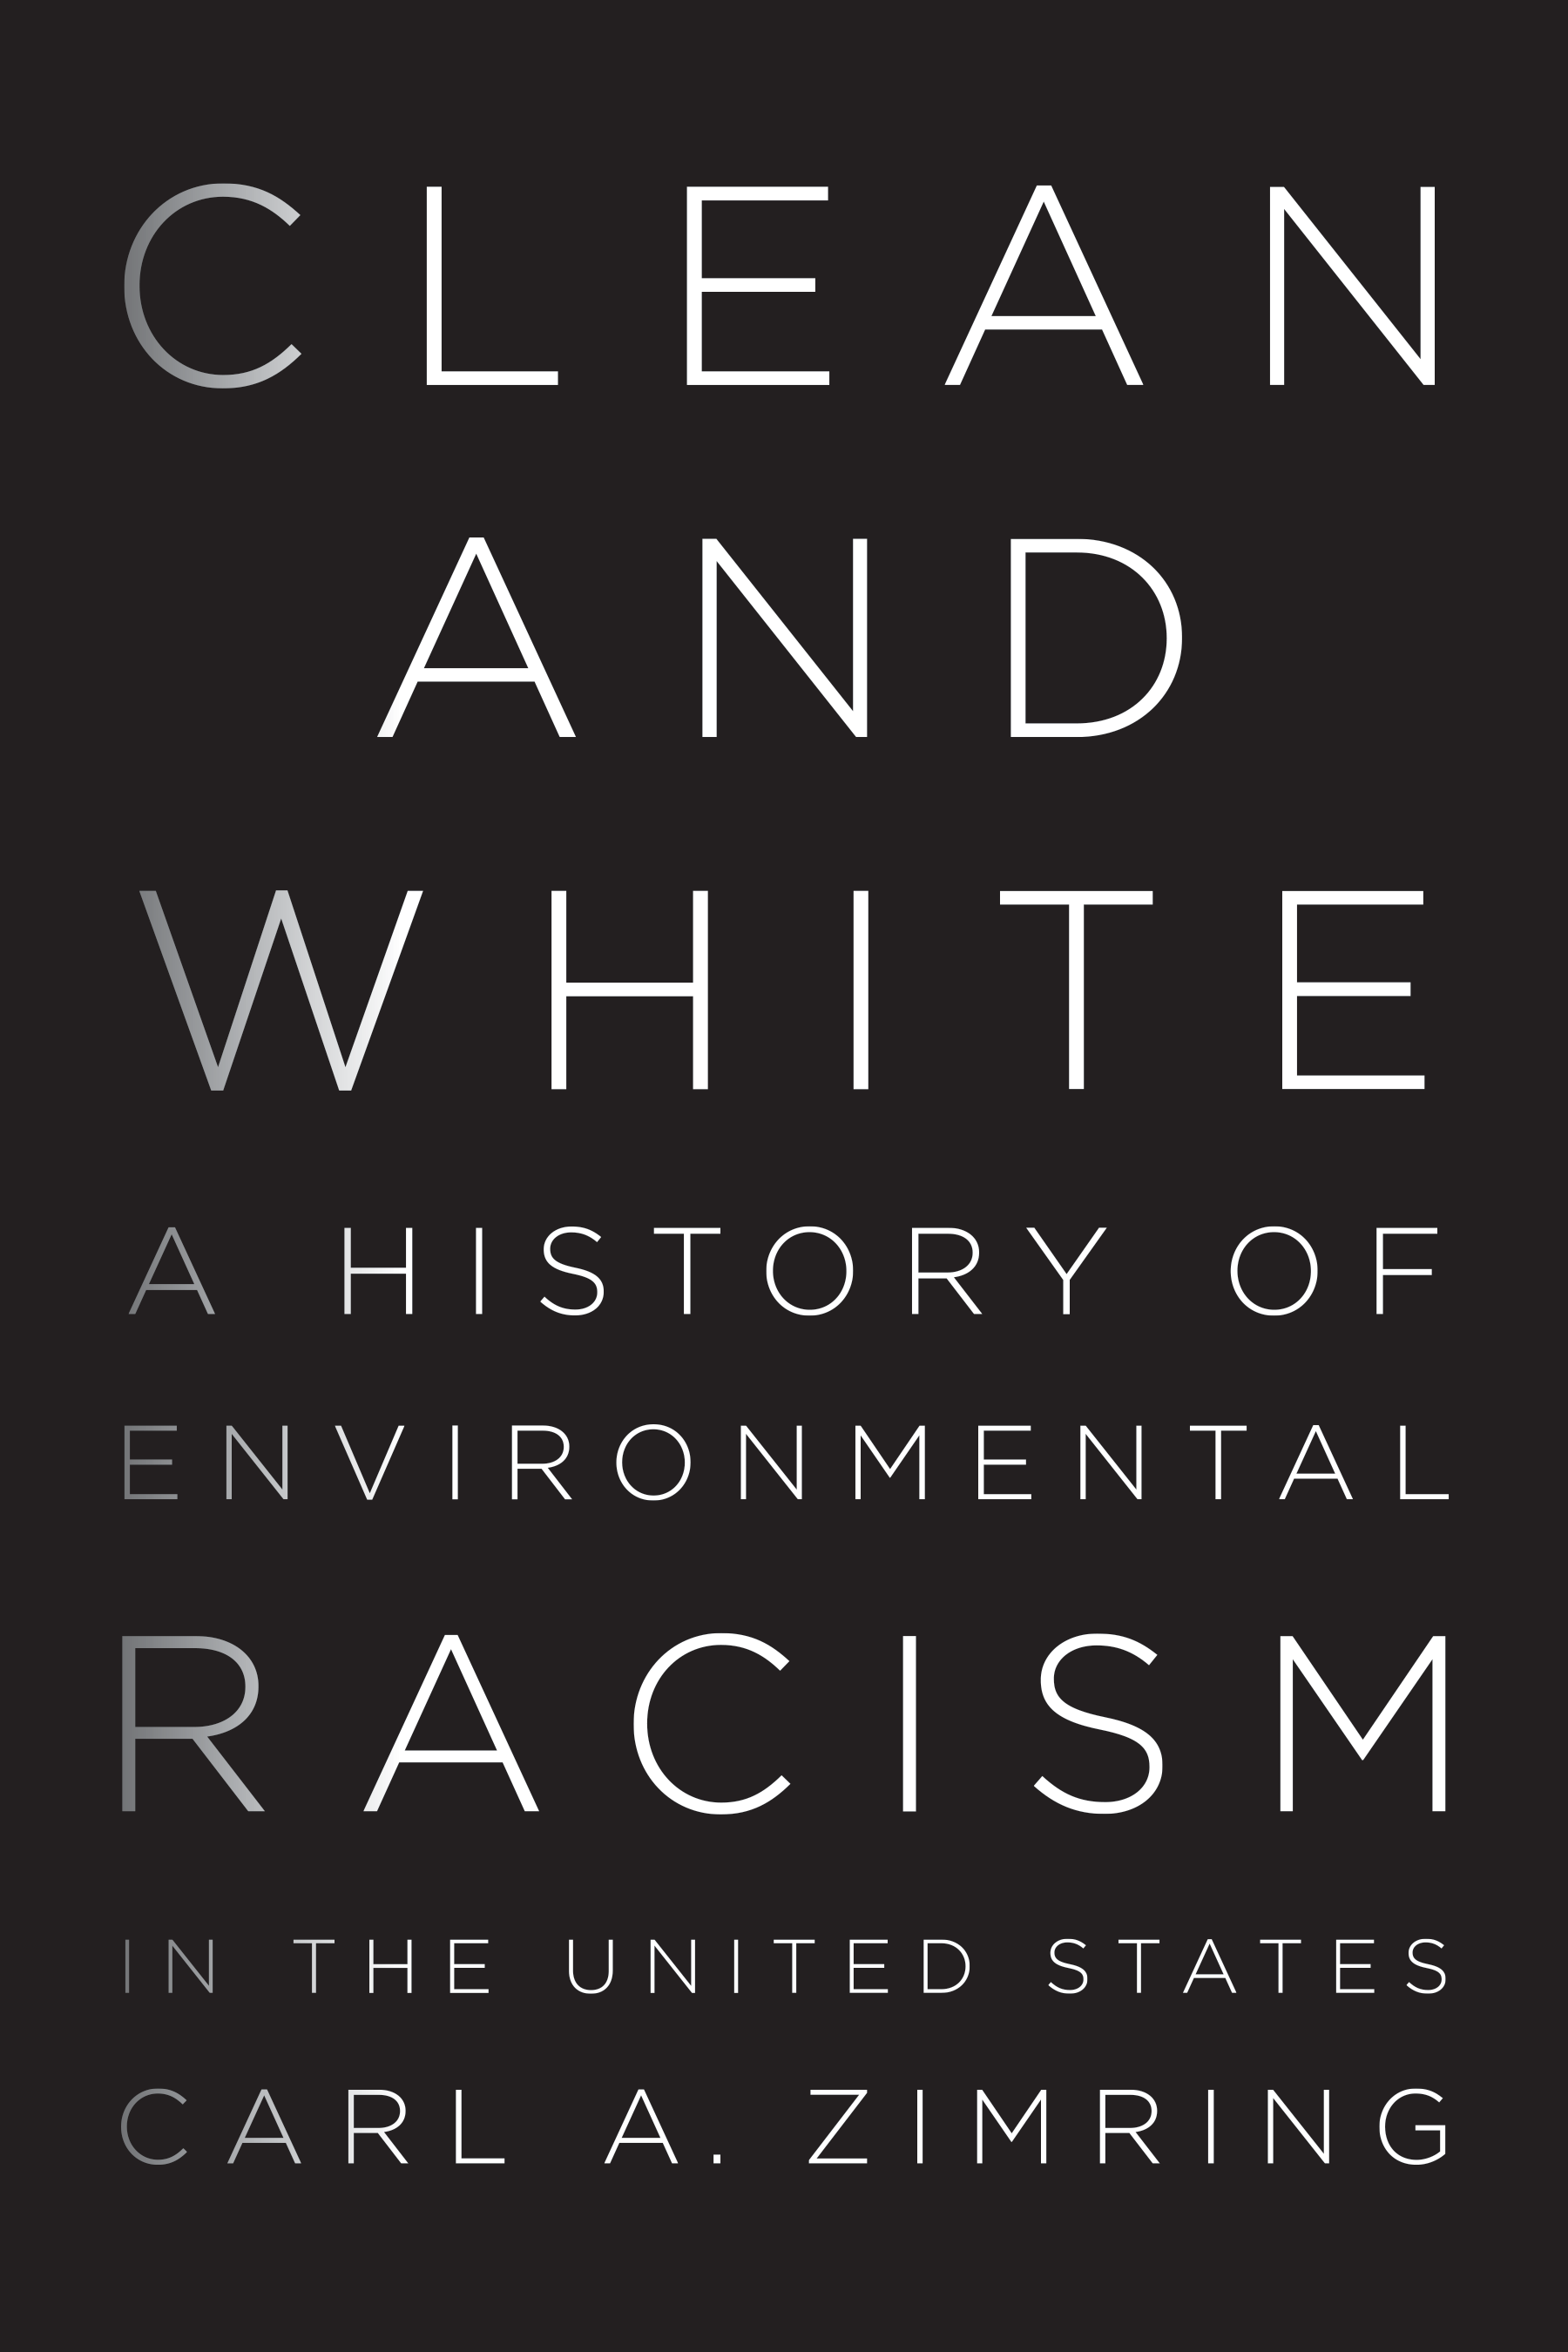 a comprehensive history of the racism in the united states of america Best states healthiest communities  so the next time you see someone questioning whether institutional racism exists in america, there's an obvious answer to the question we may not like it.